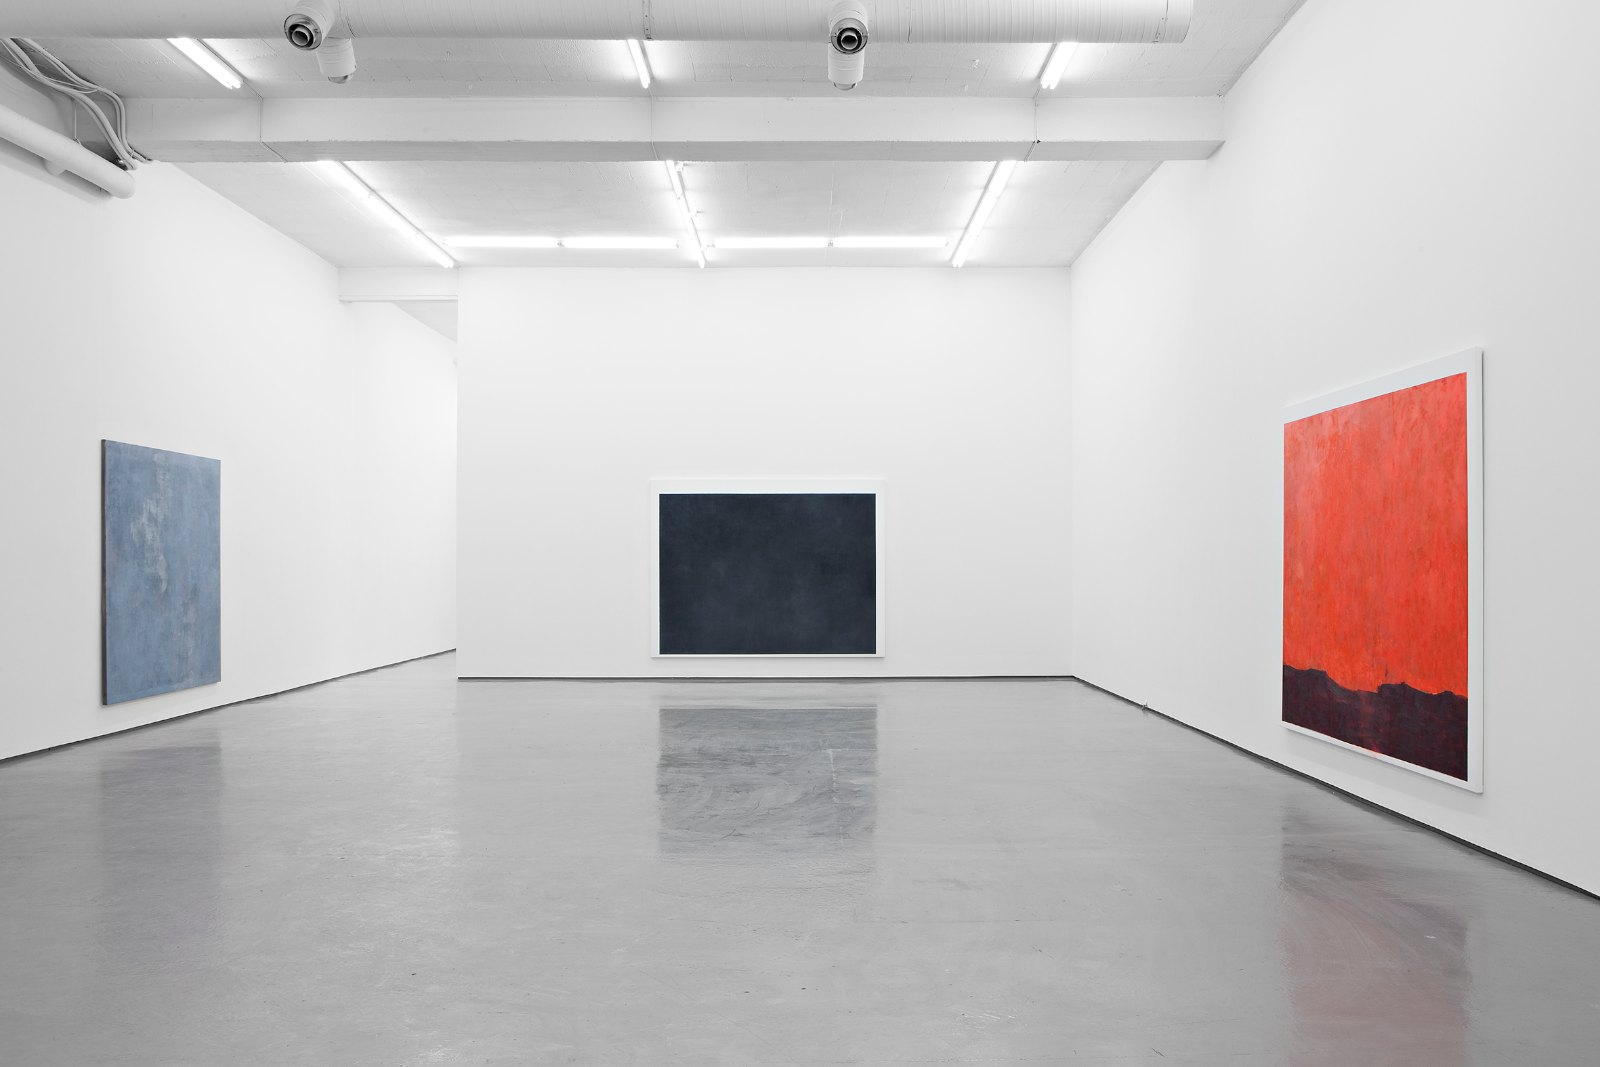 Installation view, Arne Malmedal, New paintings, Galleri Riis, Oslo, 2013